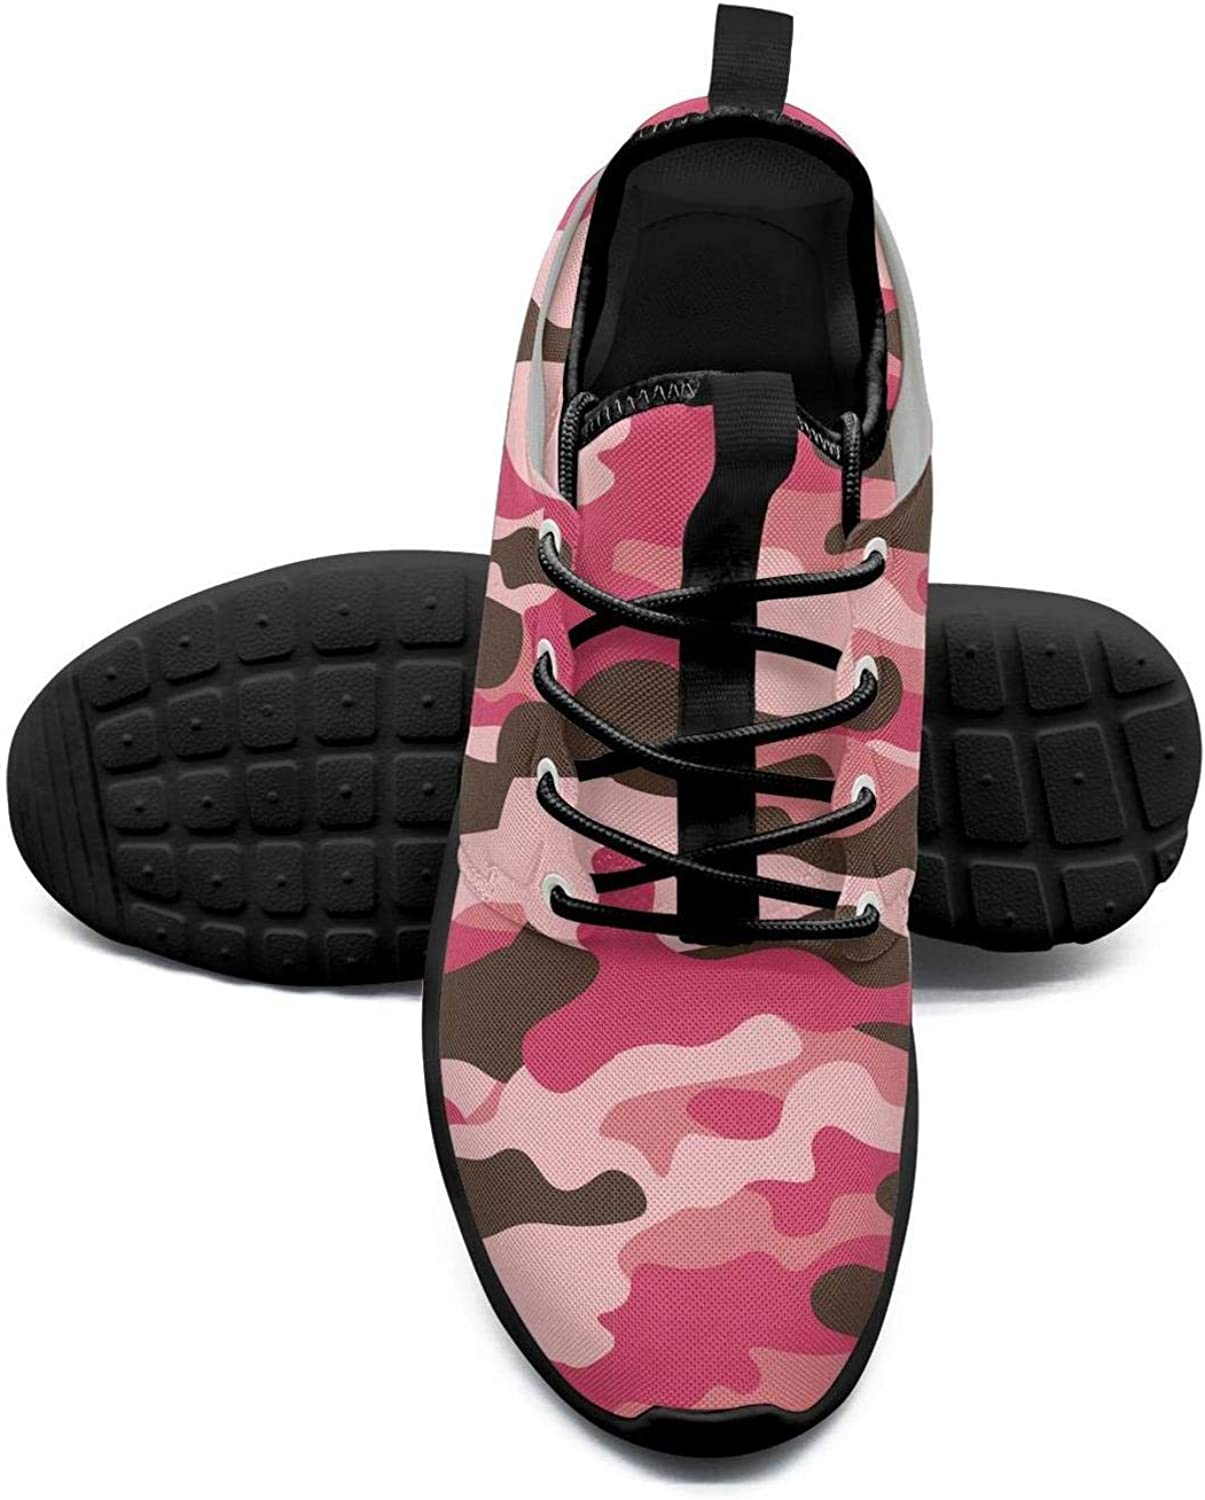 Gjsonmv Night Digital camo mesh Lightweight shoes Women Dad Sports Volleyball Sneakers shoes